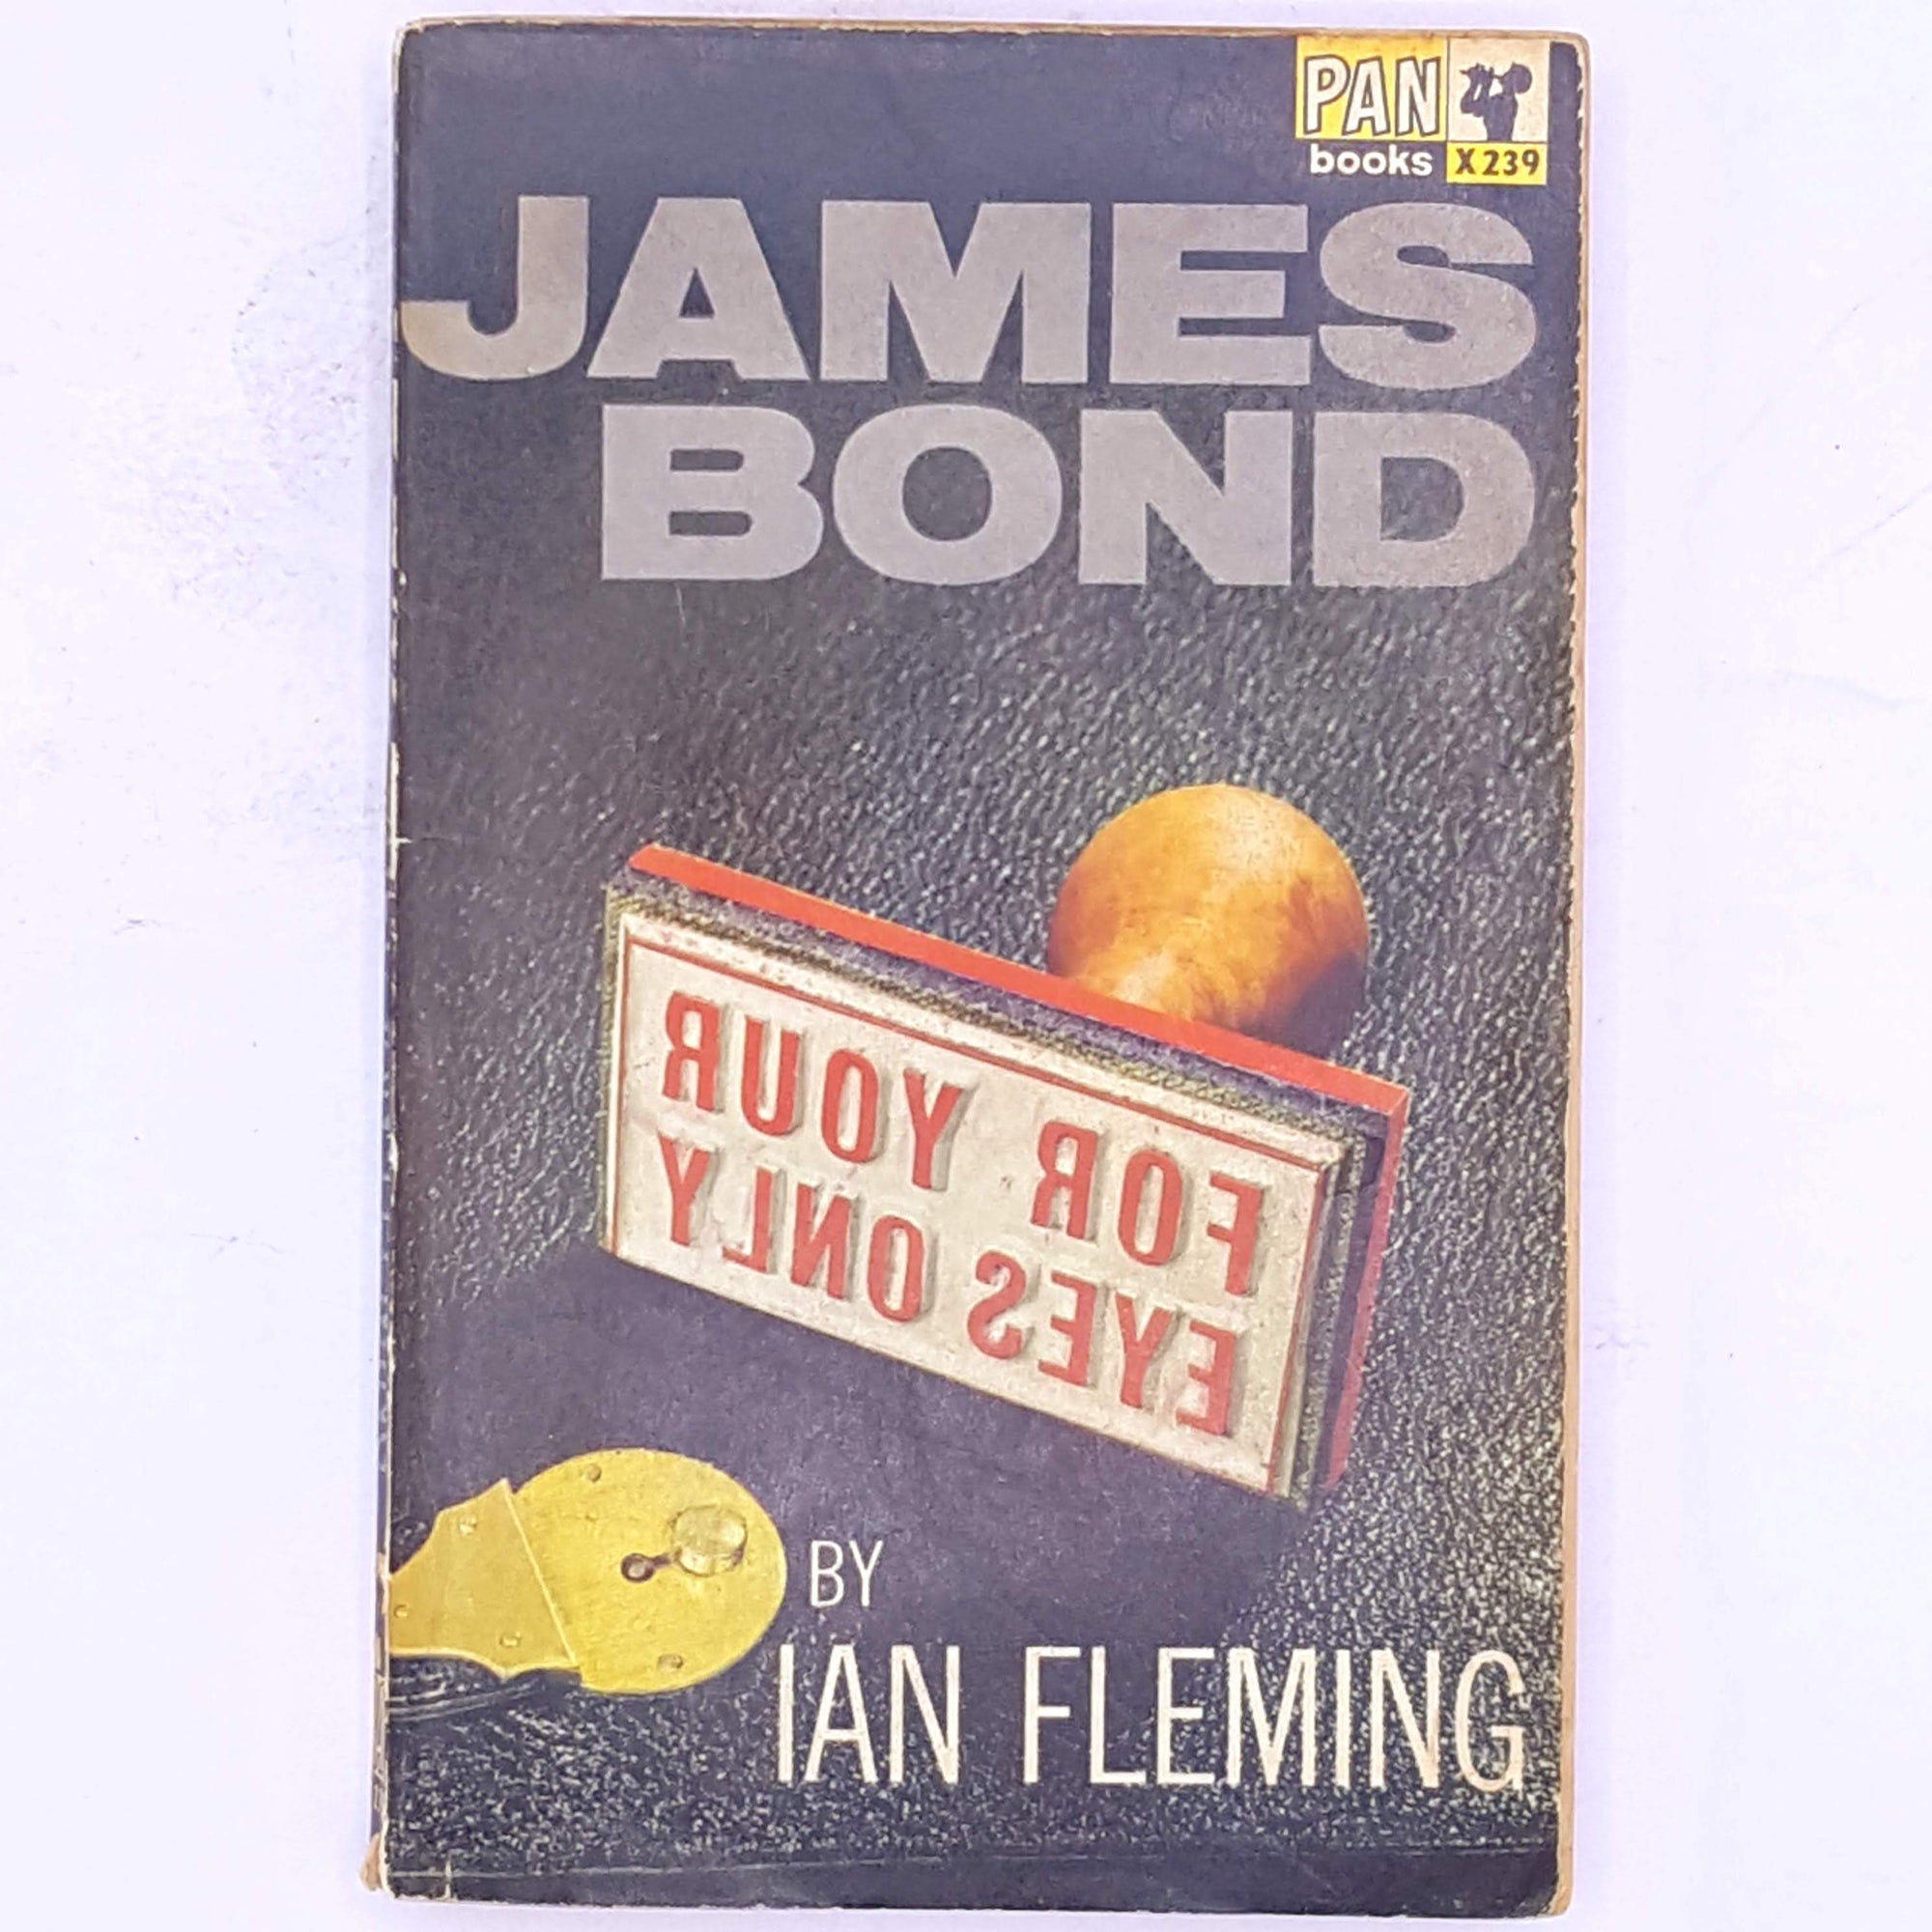 classic-old-thrift-thriller-secret-service-country-house-library-007-james-bond-for-your-eyes-only-ian-fleming-decorative-spy-crime-mystery-vintage-books-patterned-British-secret-agent-antique-